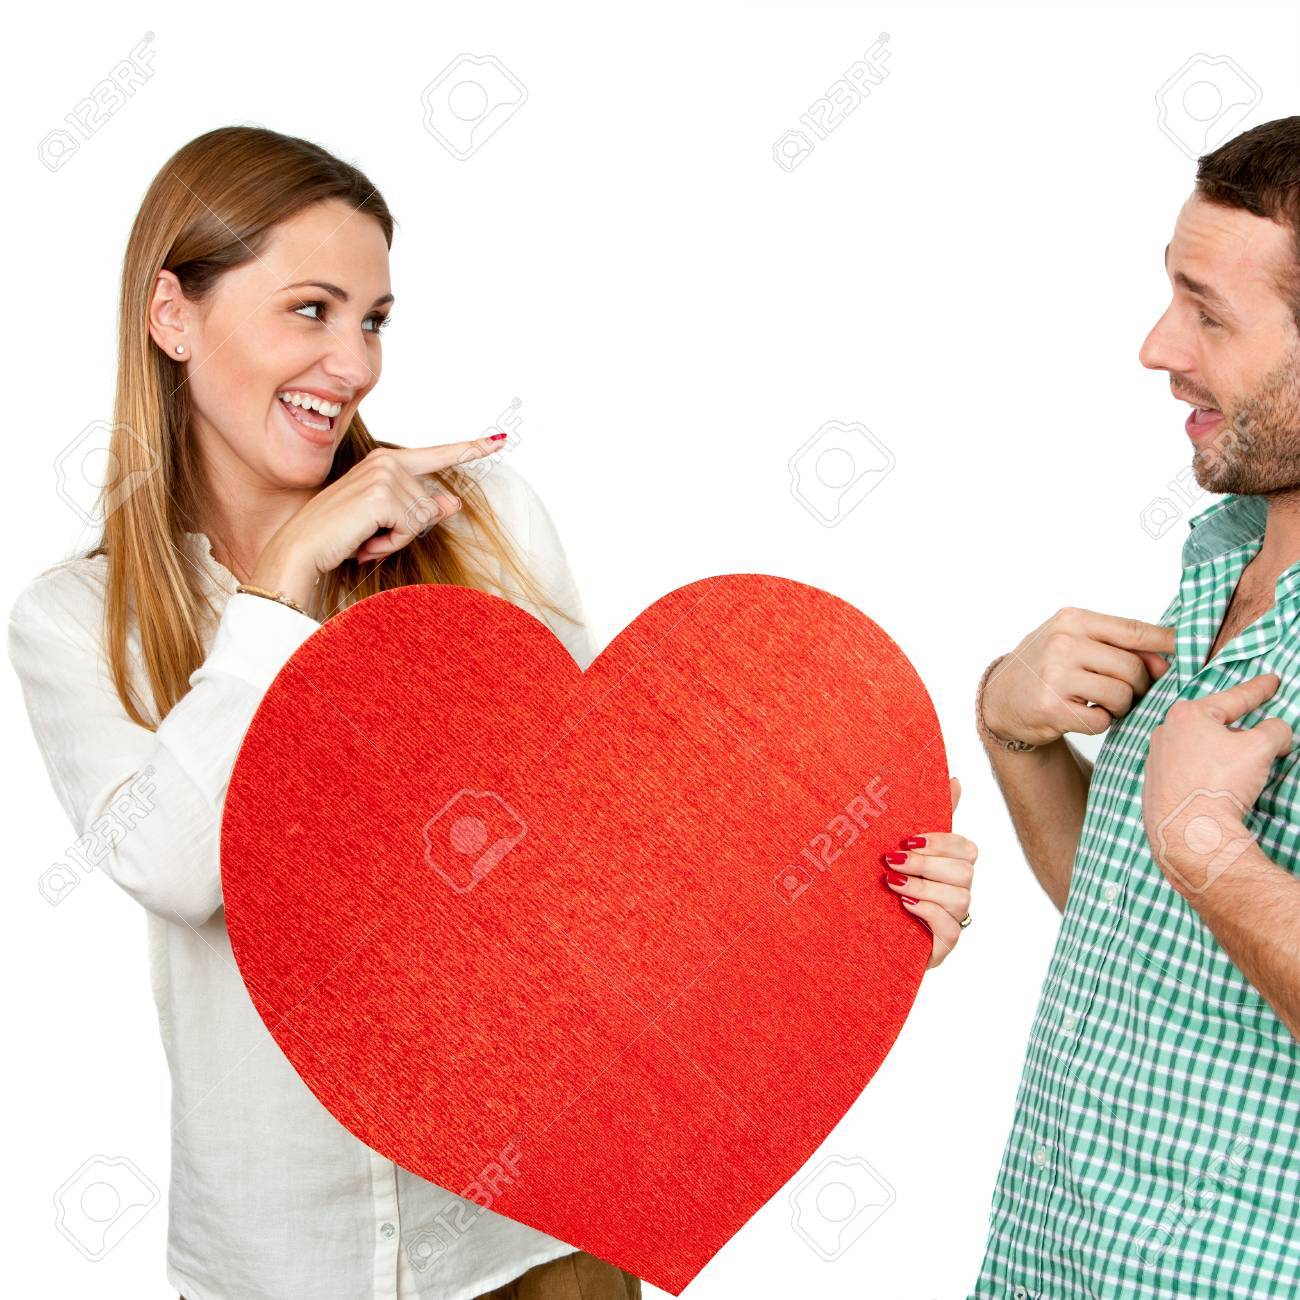 Cute Girl Holding Heart Symbol Pointing At Boy.Isolated On White ...